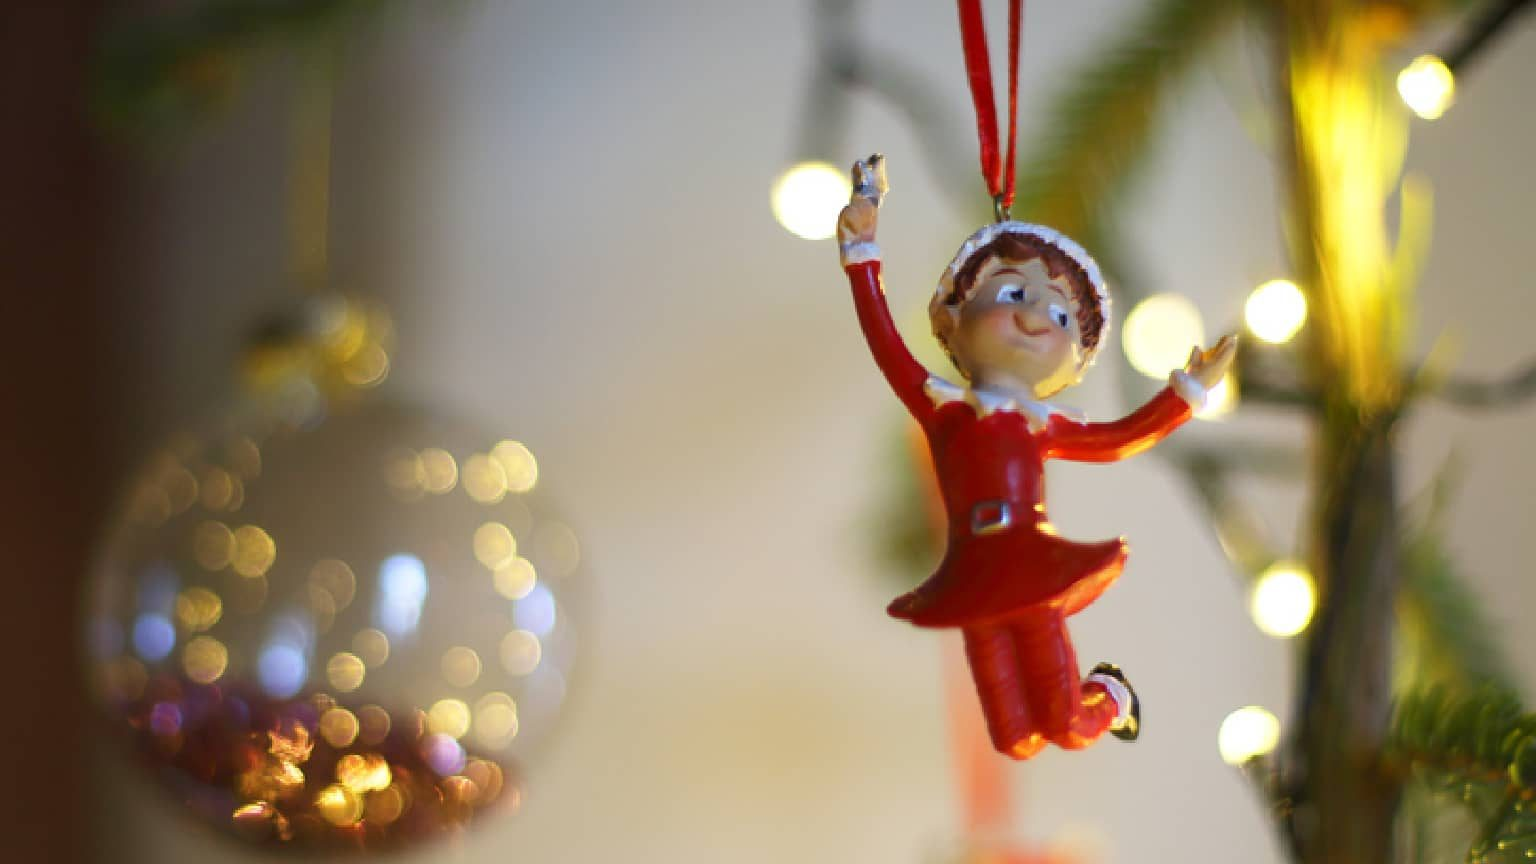 an elf on the shelf ornament hanging on a Christmas tree